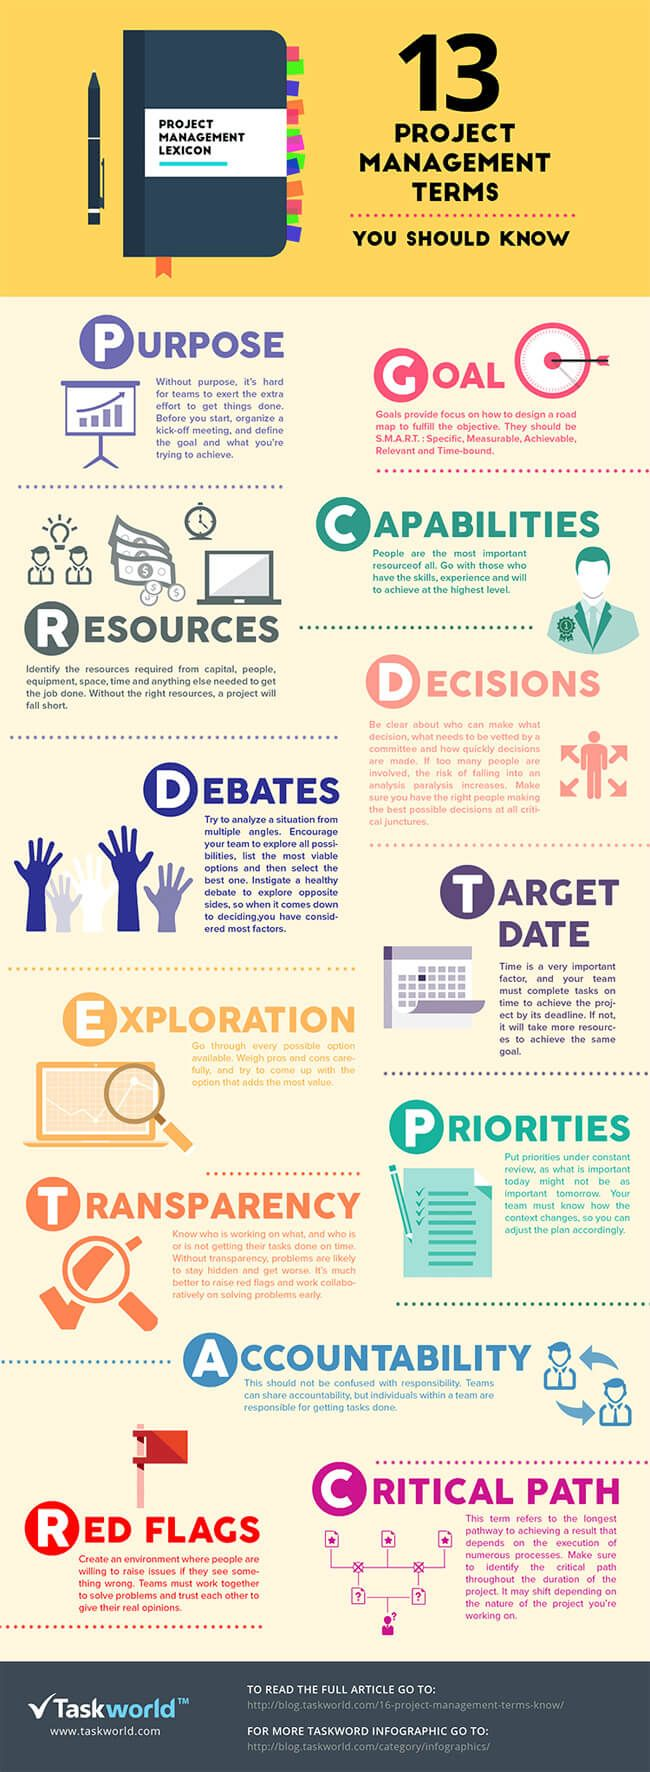 Image titled '13 Project Management Terms You Need to Know by Heart'